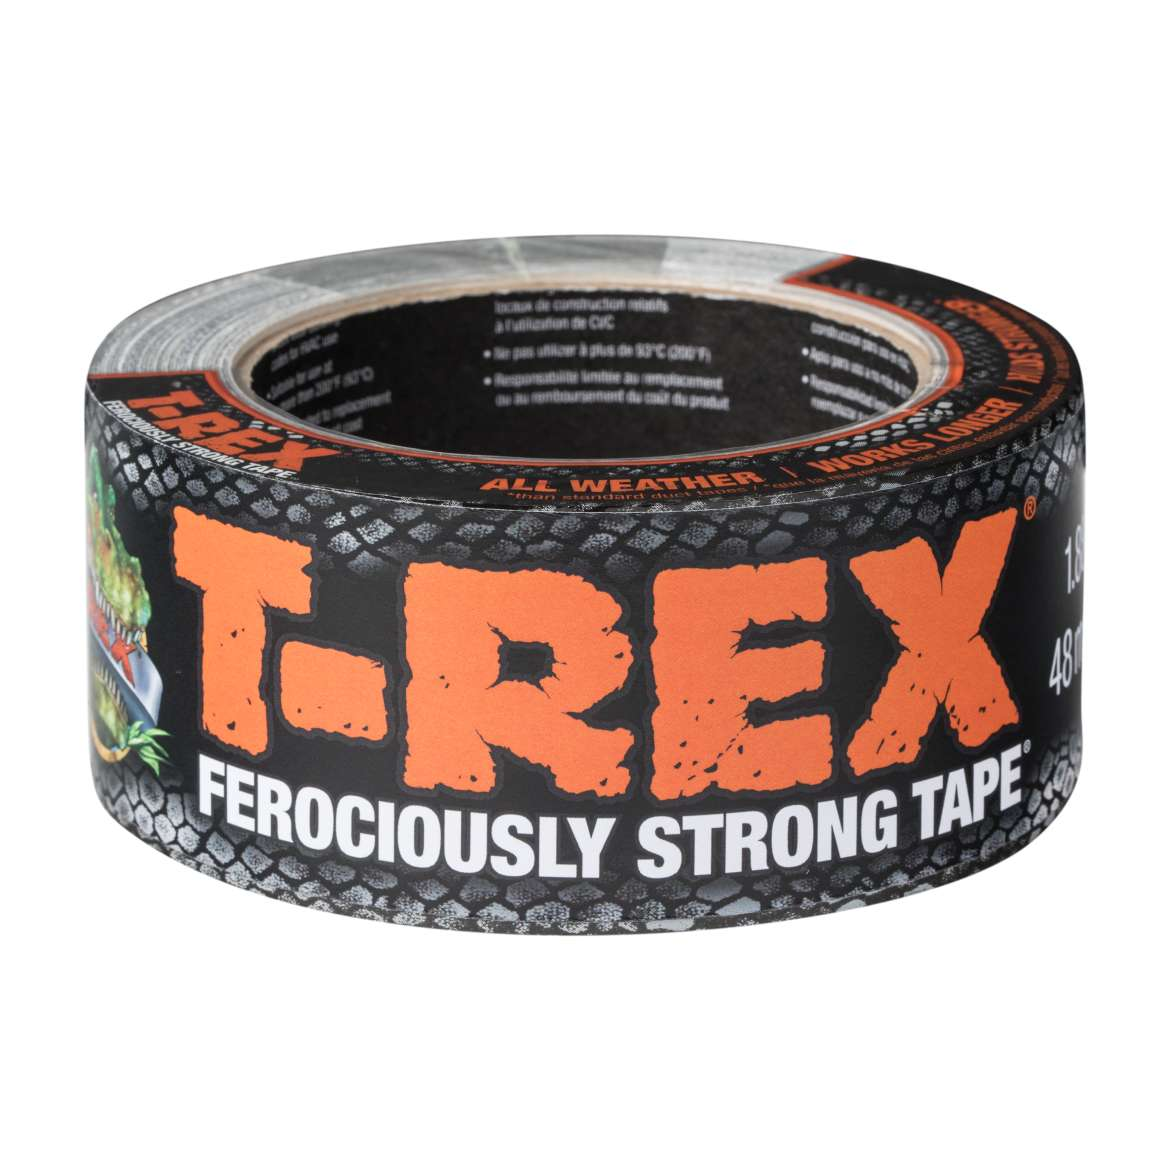 "T-Rex Ferociously Strong Repair Tape, Gunmetal Grey, 1.88"" x 12 yards"